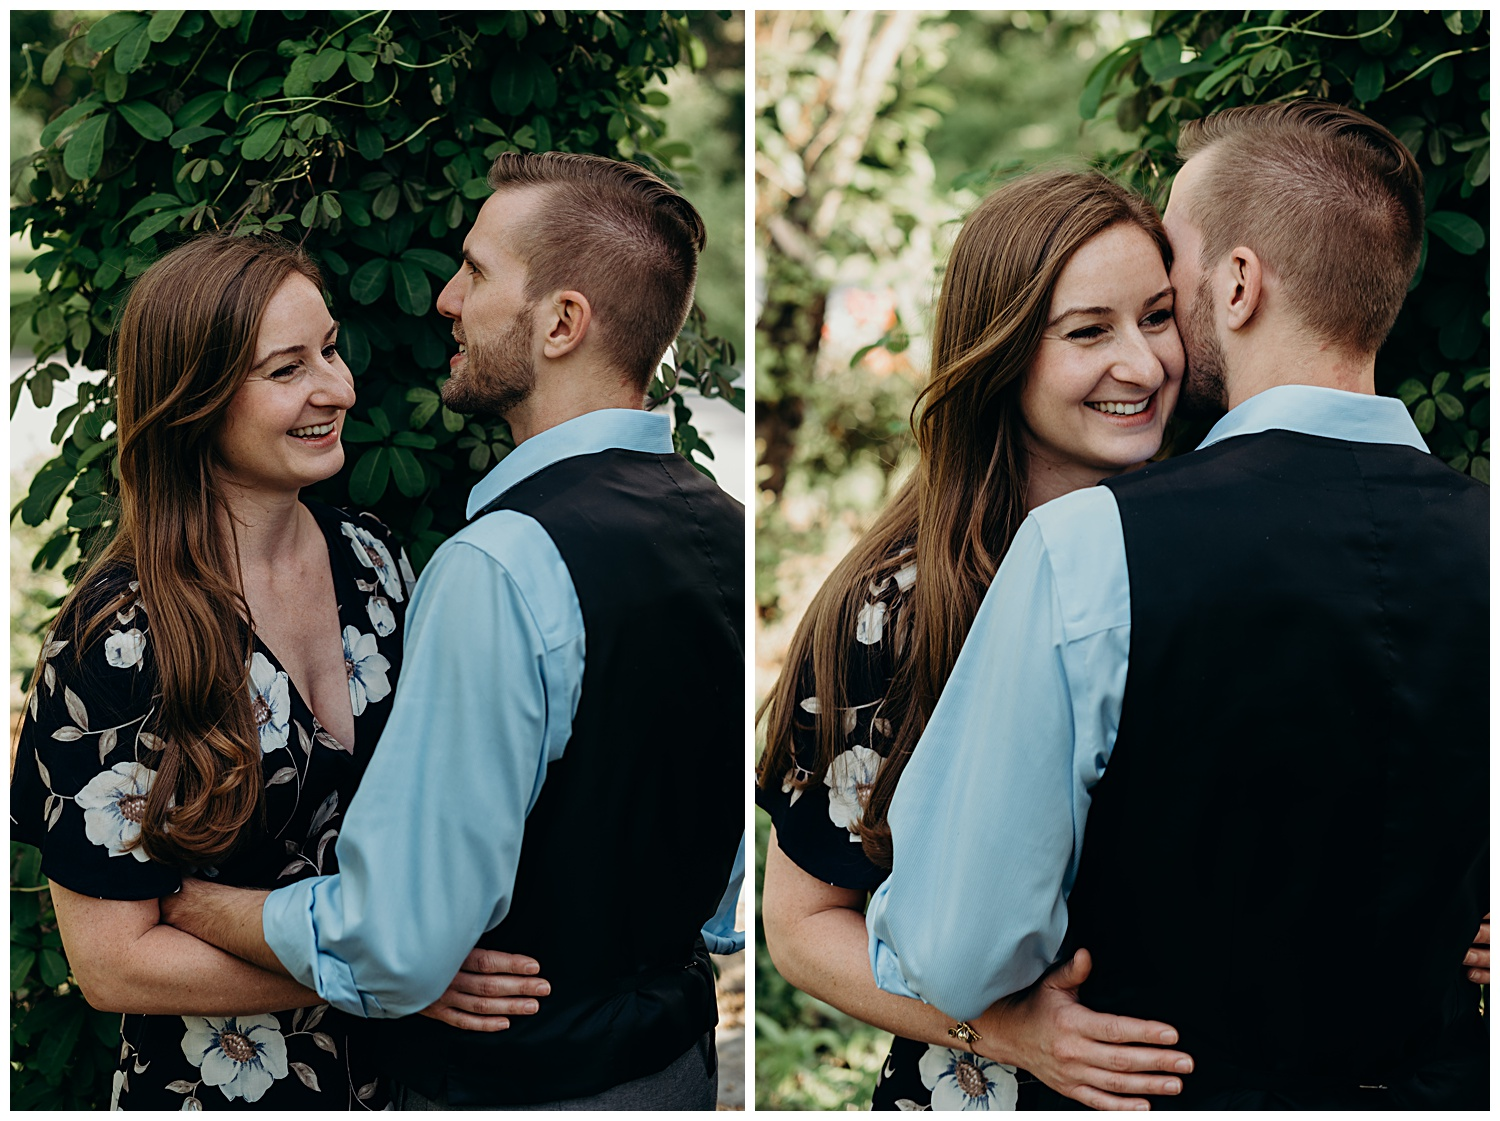 Megan-Graham-Photography-best-dc-wedding-engagement-photographer-surreybrooke-laura-eric-frederick6.jpg